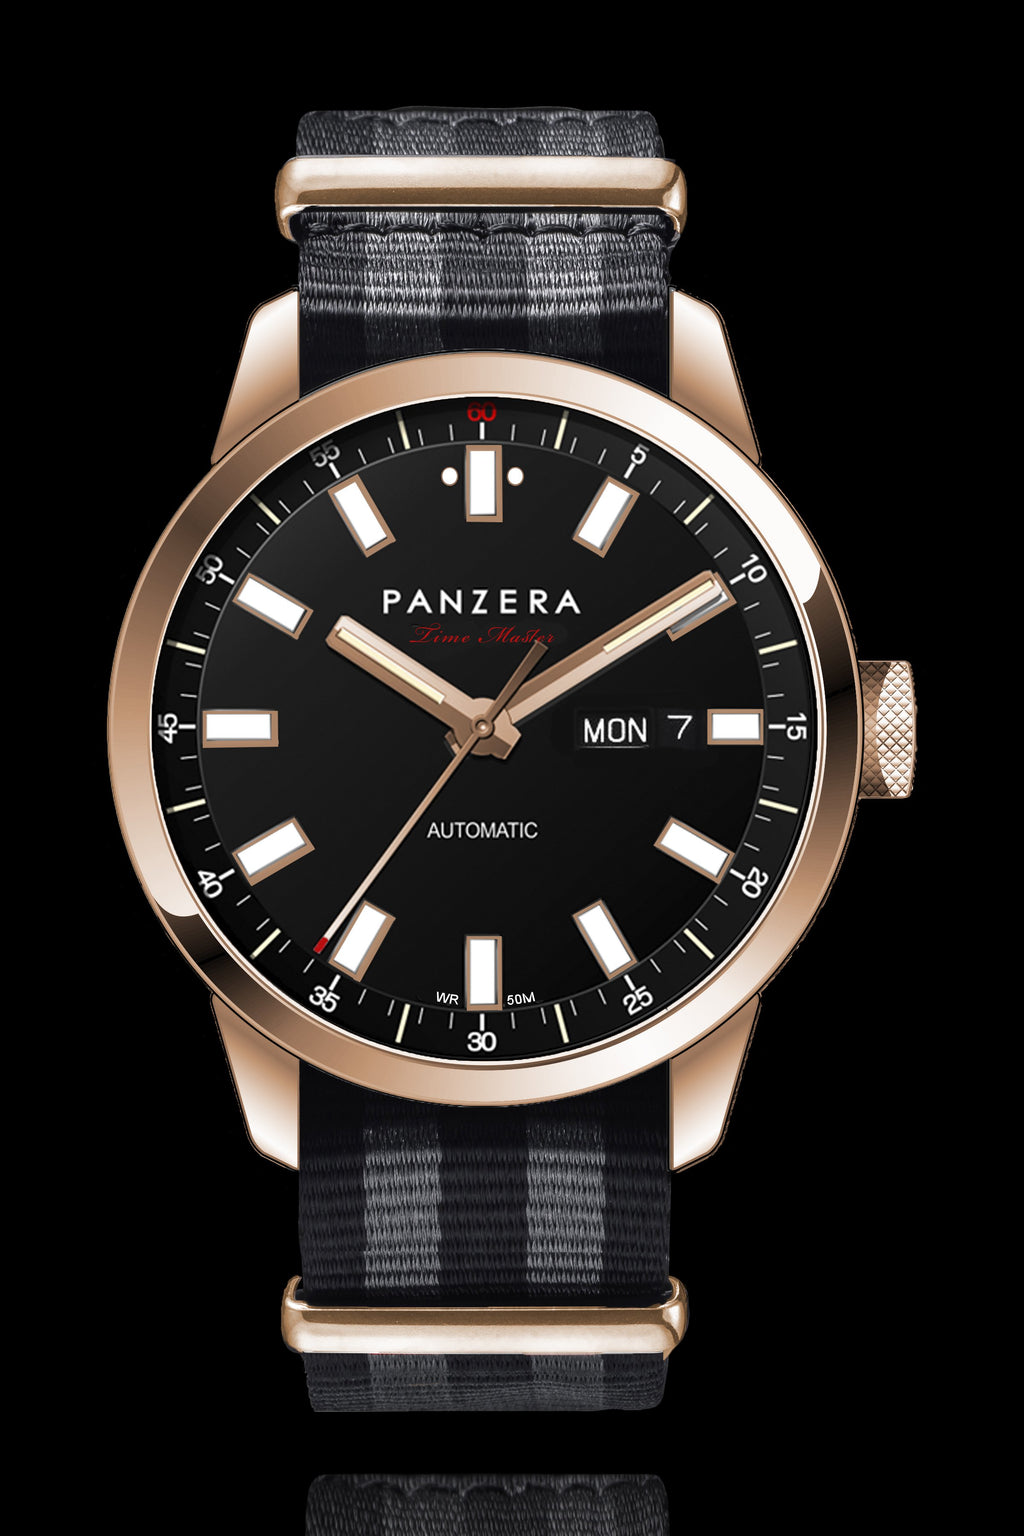 PANZERA TIME MASTER GRAND TOURING MK5